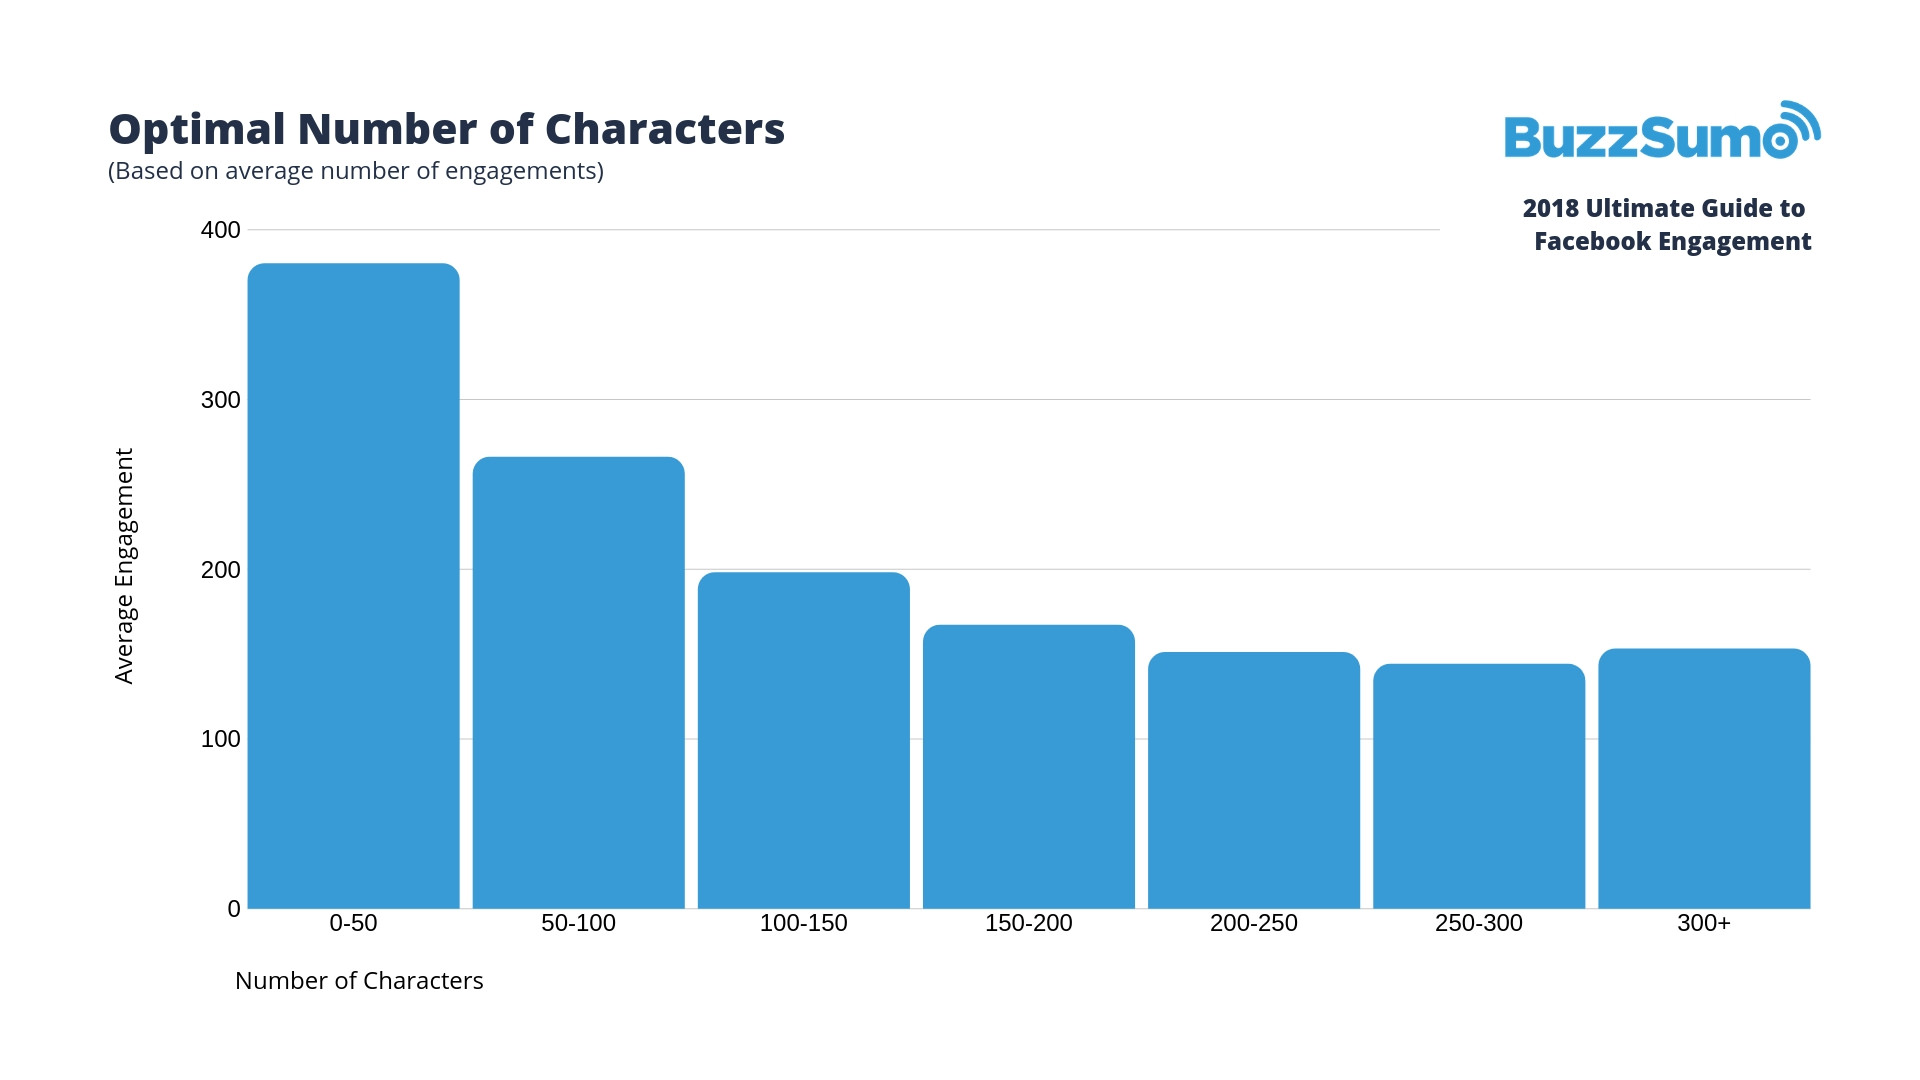 optimal number of characters for facebook engagement